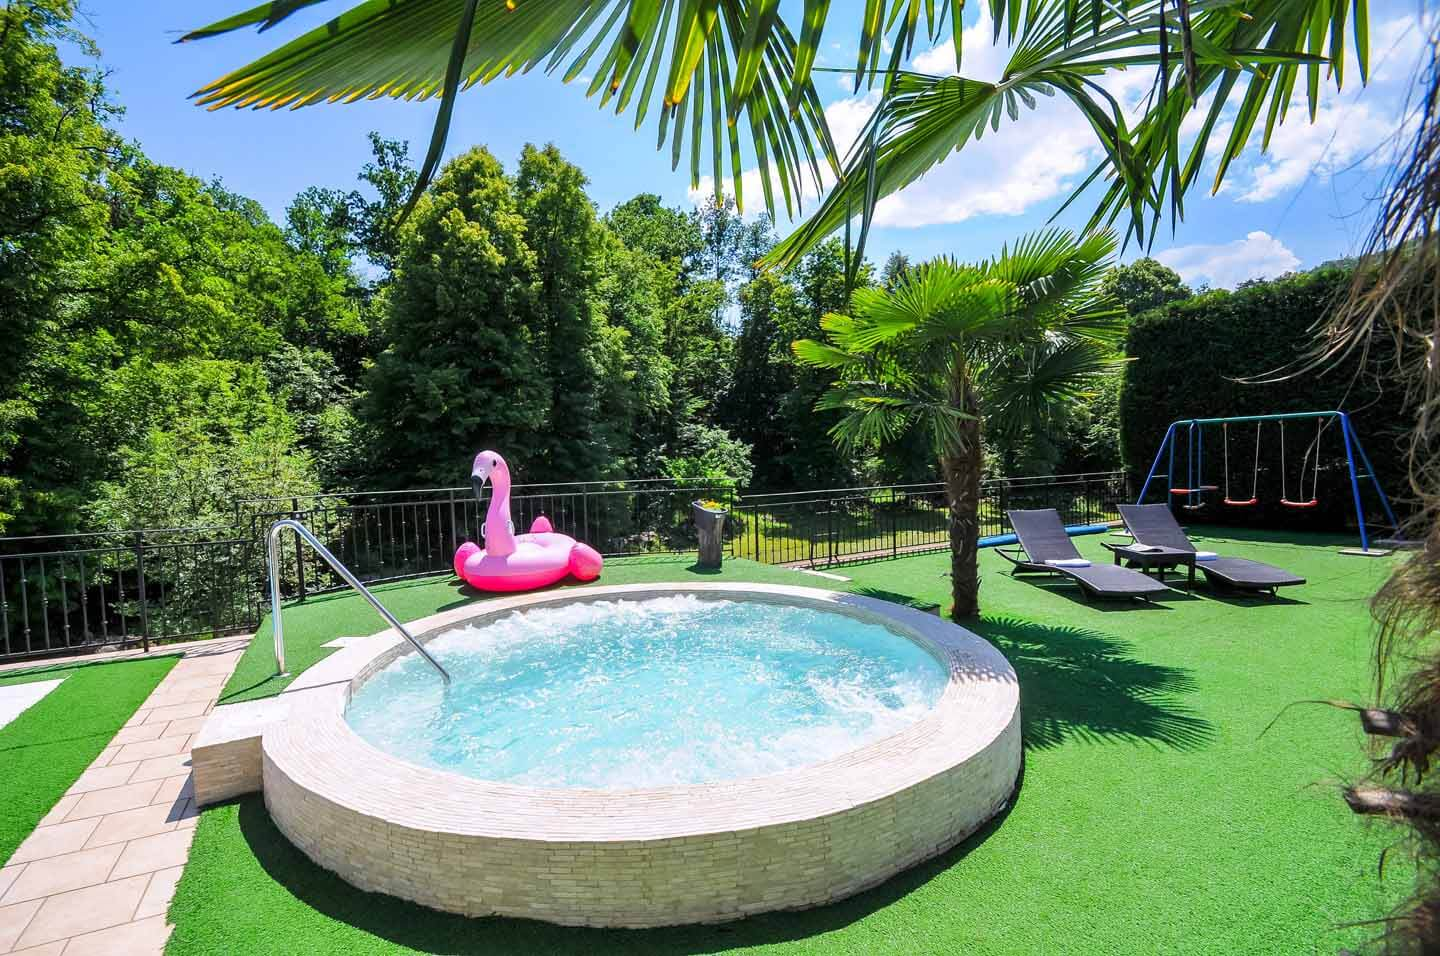 Outdoor play area and jacuzzi